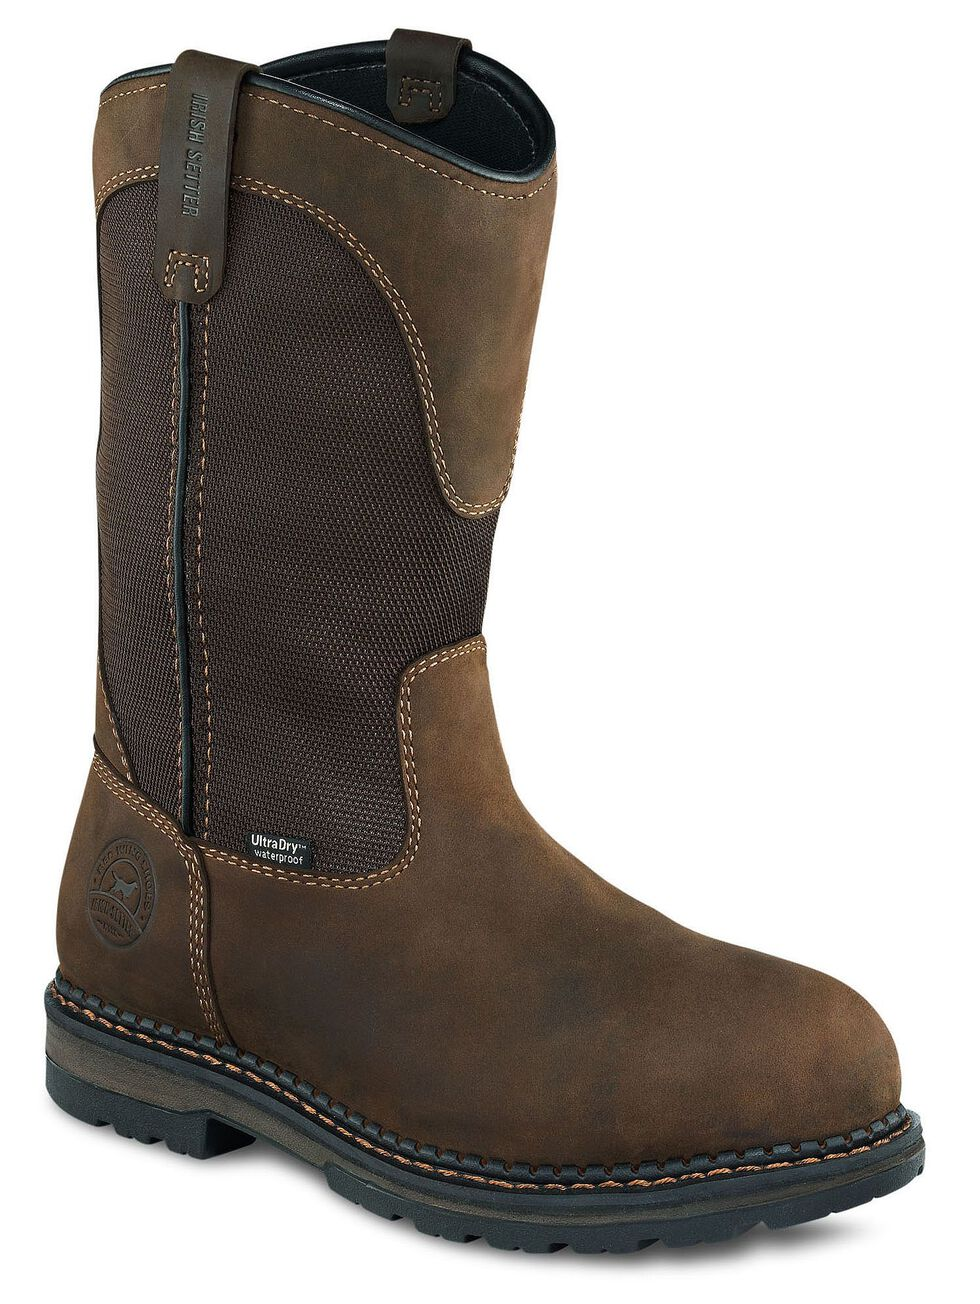 Irish Setter by Red Wing Shoes Men's Ramsey Waterproof Pull-On Work Boots - Safety Toe, Brown, hi-res